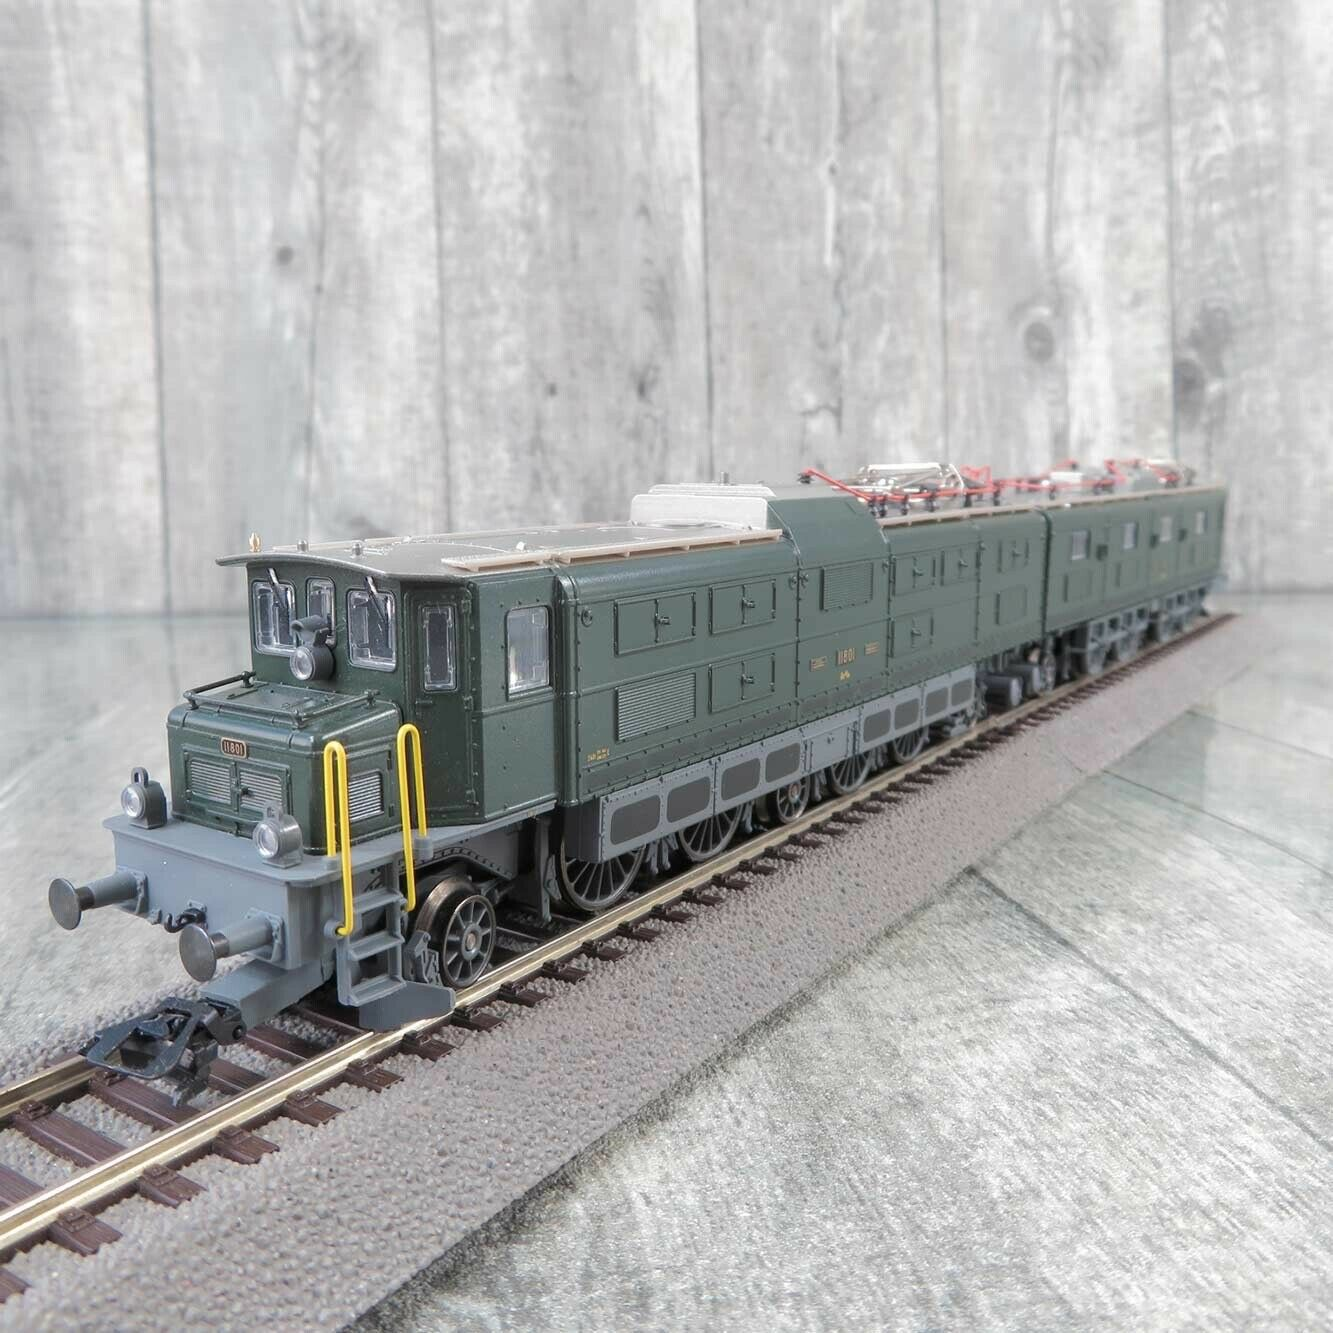 Märklin 37596 - H0 - E-Lok Ae 8 14 - SBB -118 01 - Digital+Sound - MFX -  N25458